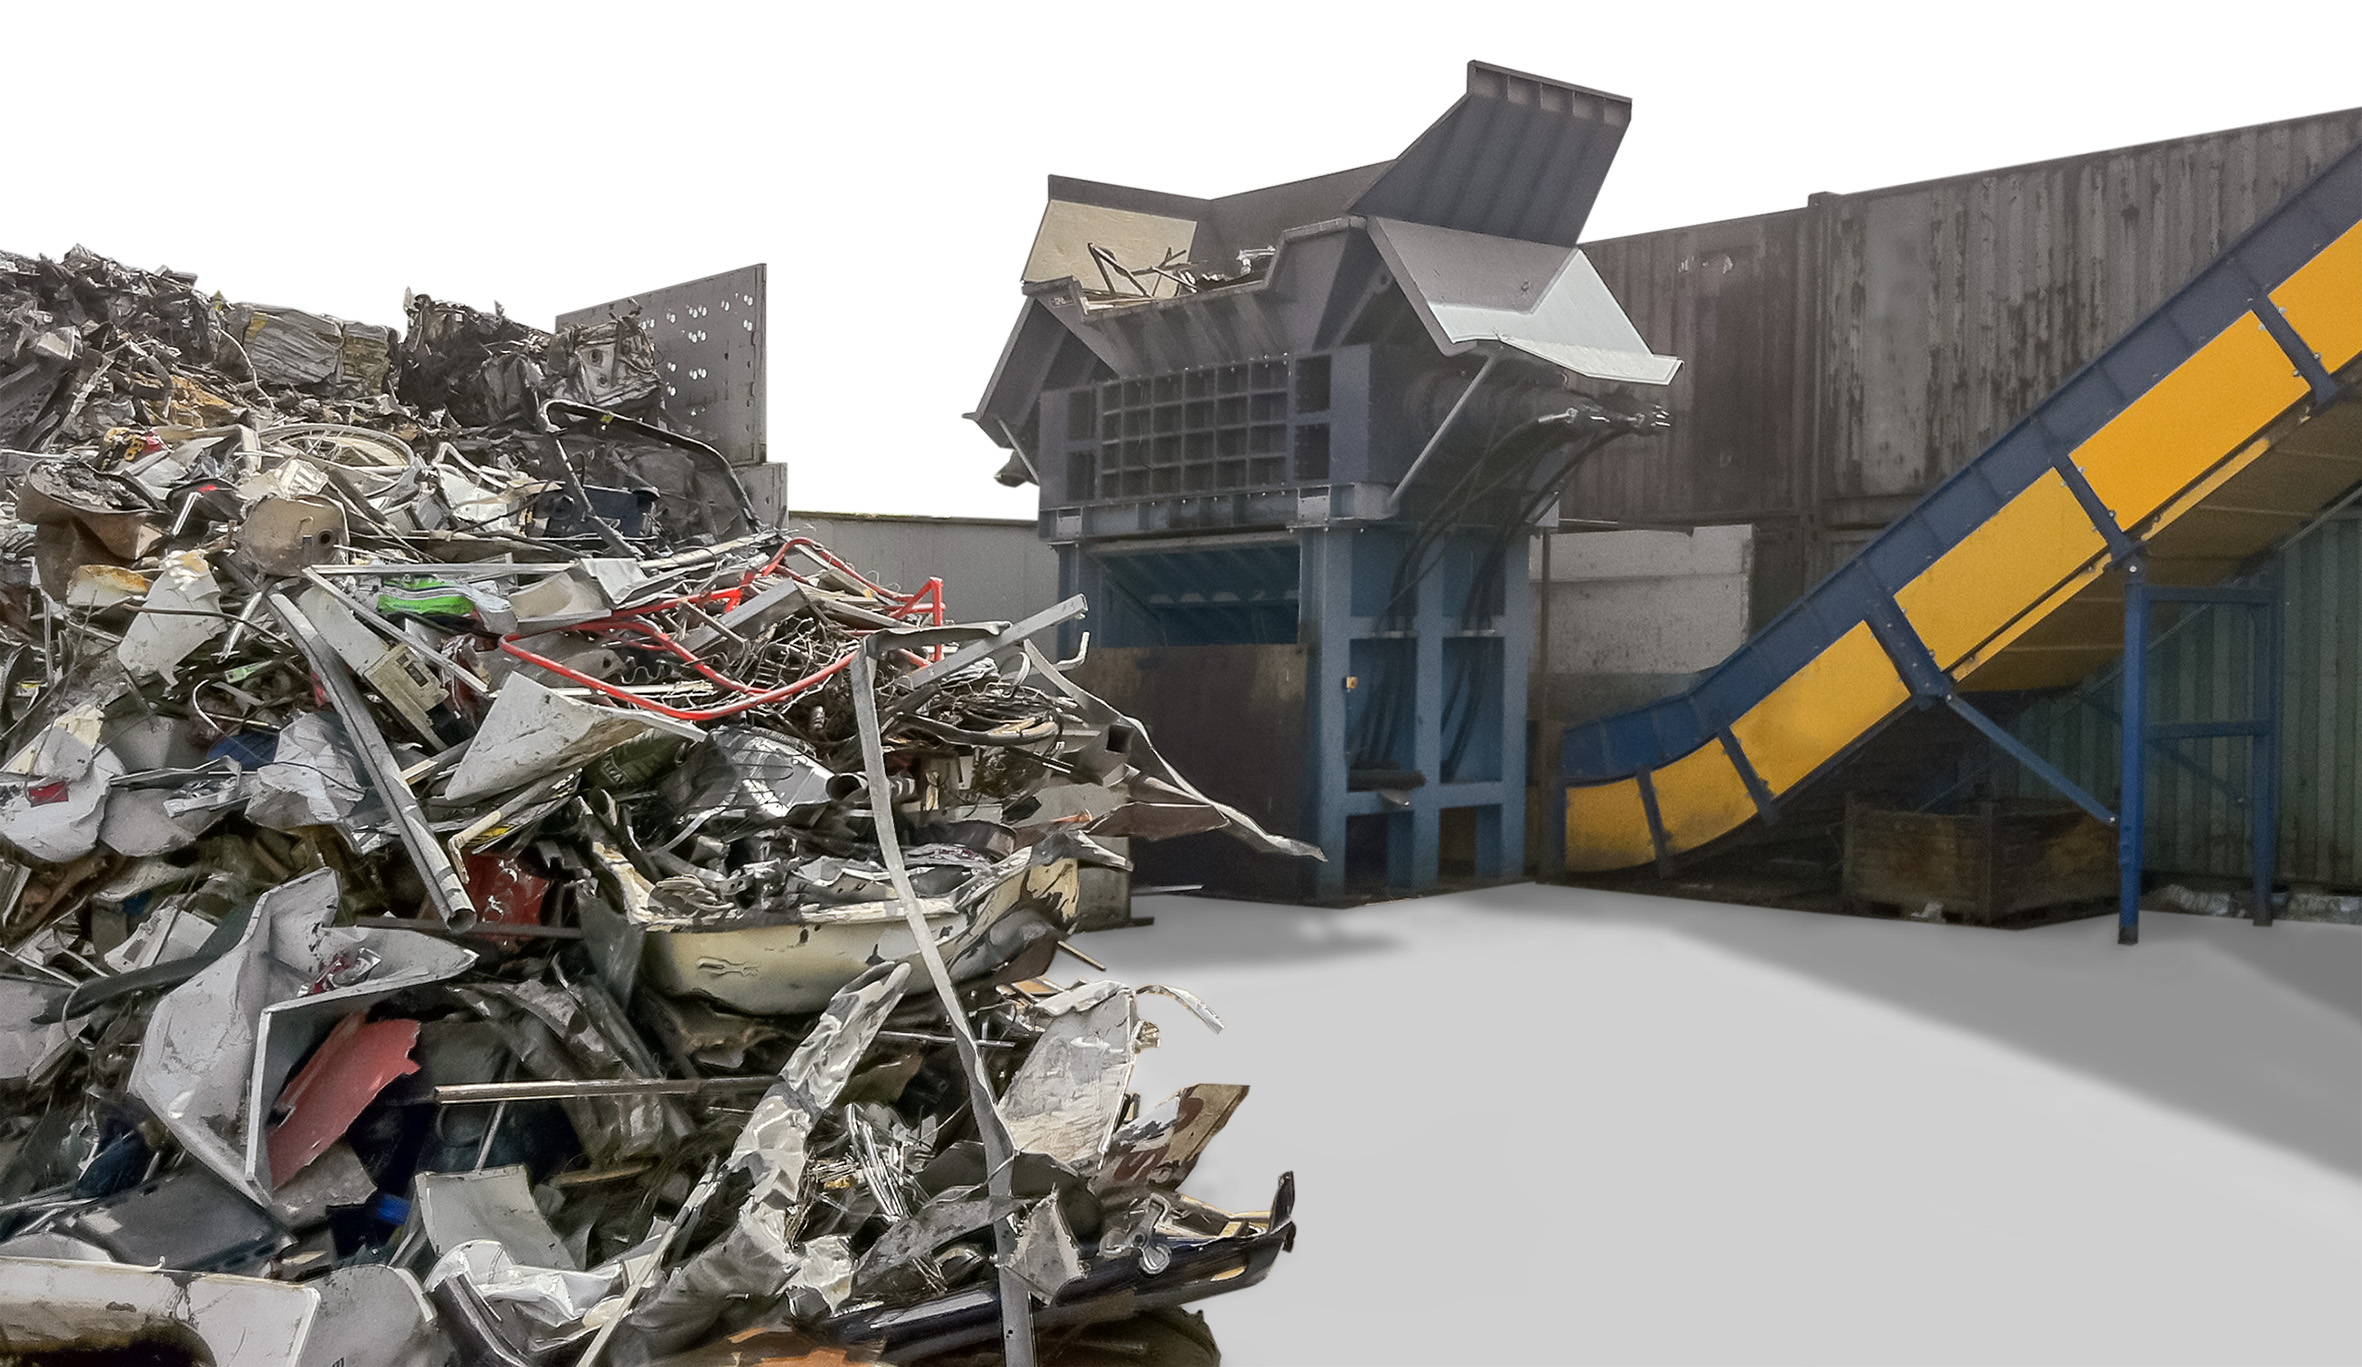 Ferrous waste collection processing system